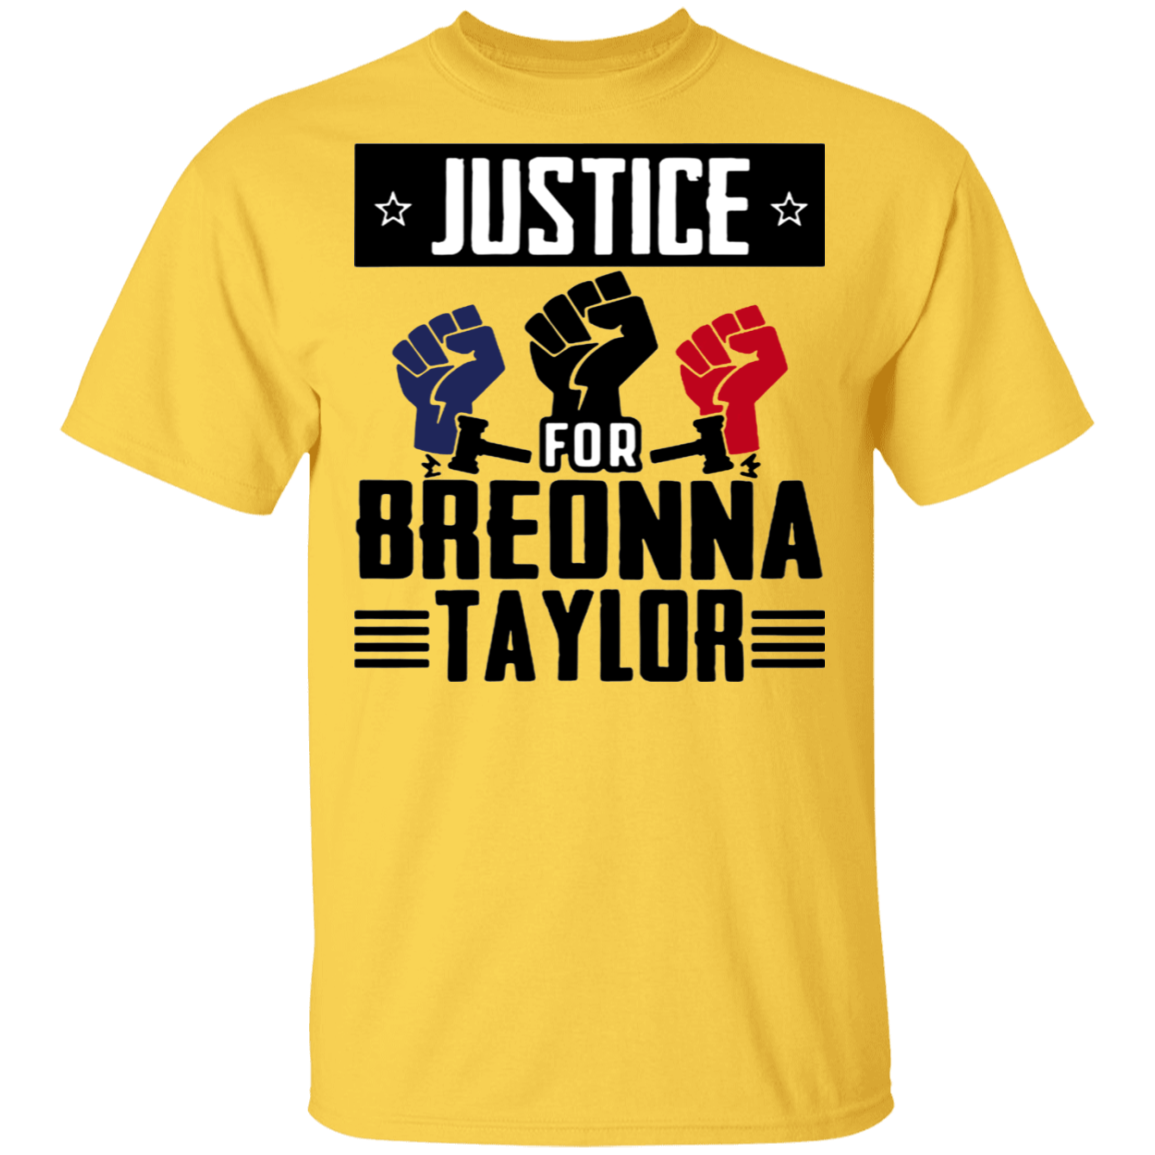 Justice For Breonna Taylor T Shirt No Justice No Peace Shirt For Breonna Taylor Protest Daisy L In 2021 Peace Shirt Printed Shirts T Shirt